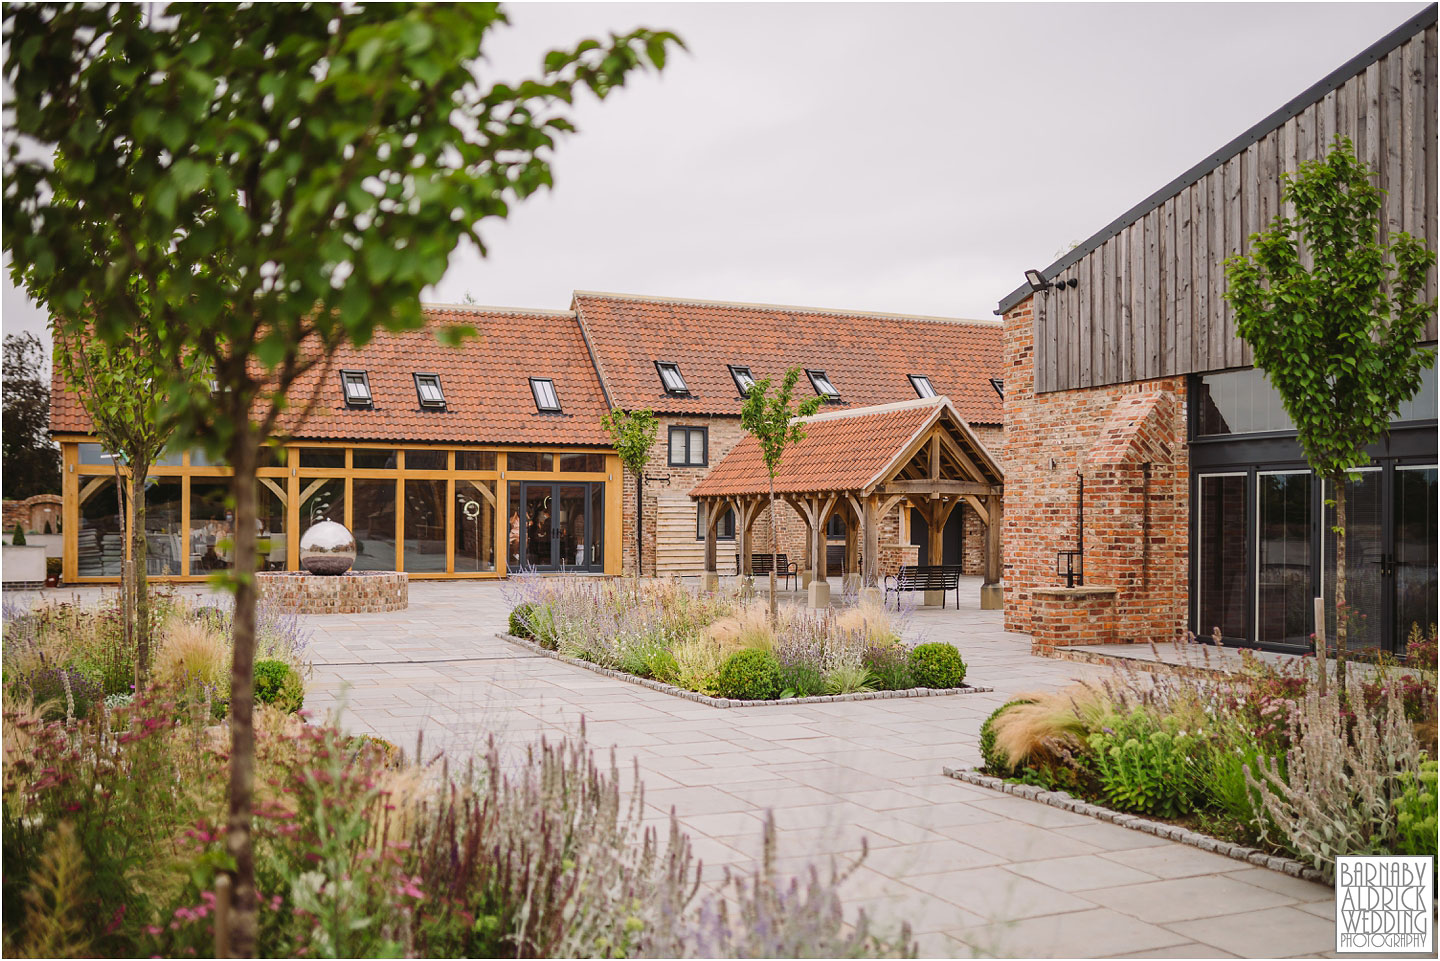 Yorkshire Barn Wedding venue The Oakwood at Ryther near Tadcaster in Yorkshire